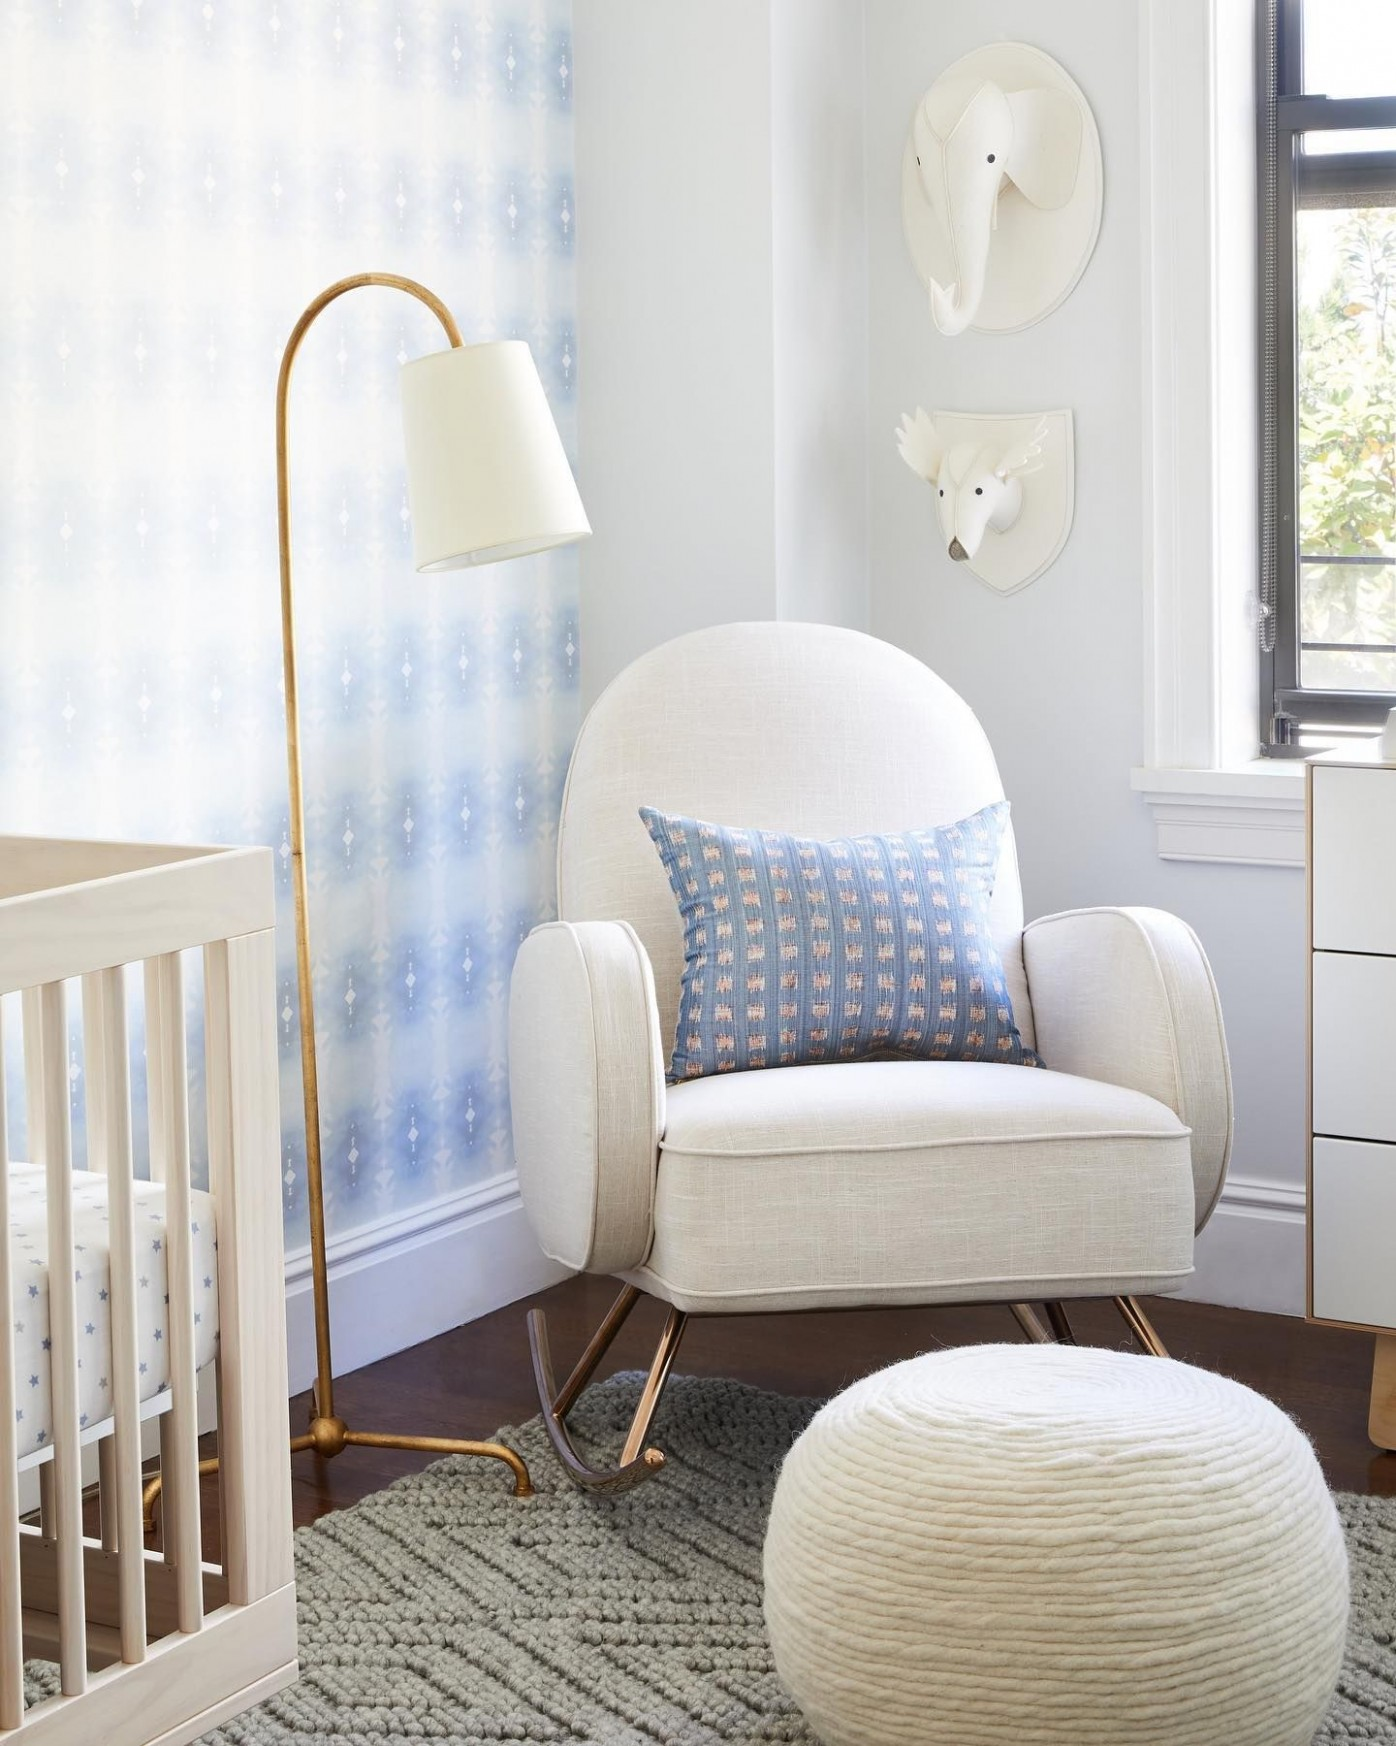 Mia Floor Lamp in 10  Baby blue nursery, Modern nursery design  - Baby Room Floor Lamp